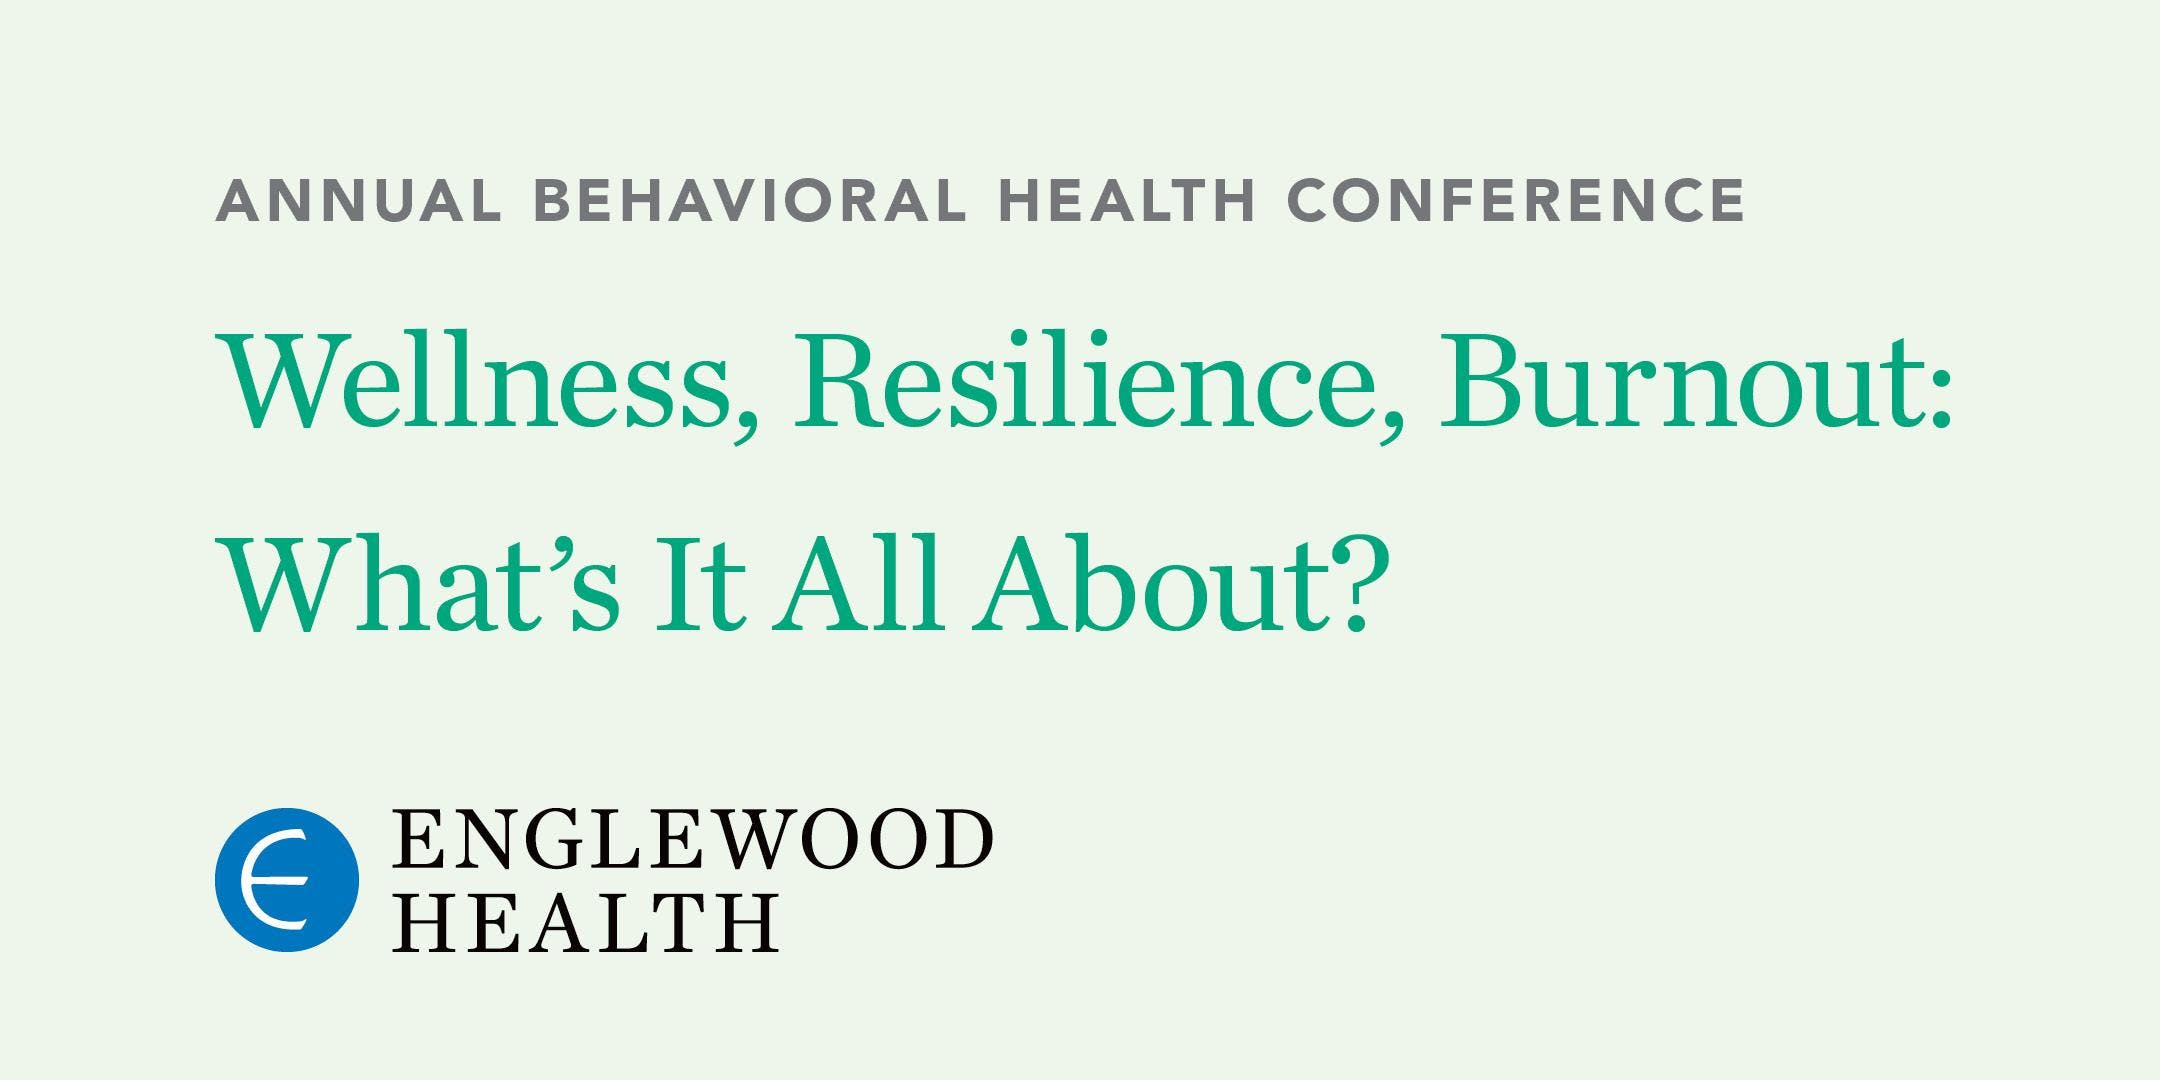 Annual Behavioral Health Conference 2019: Wellness, Resilience, Burnout: What's It All About?